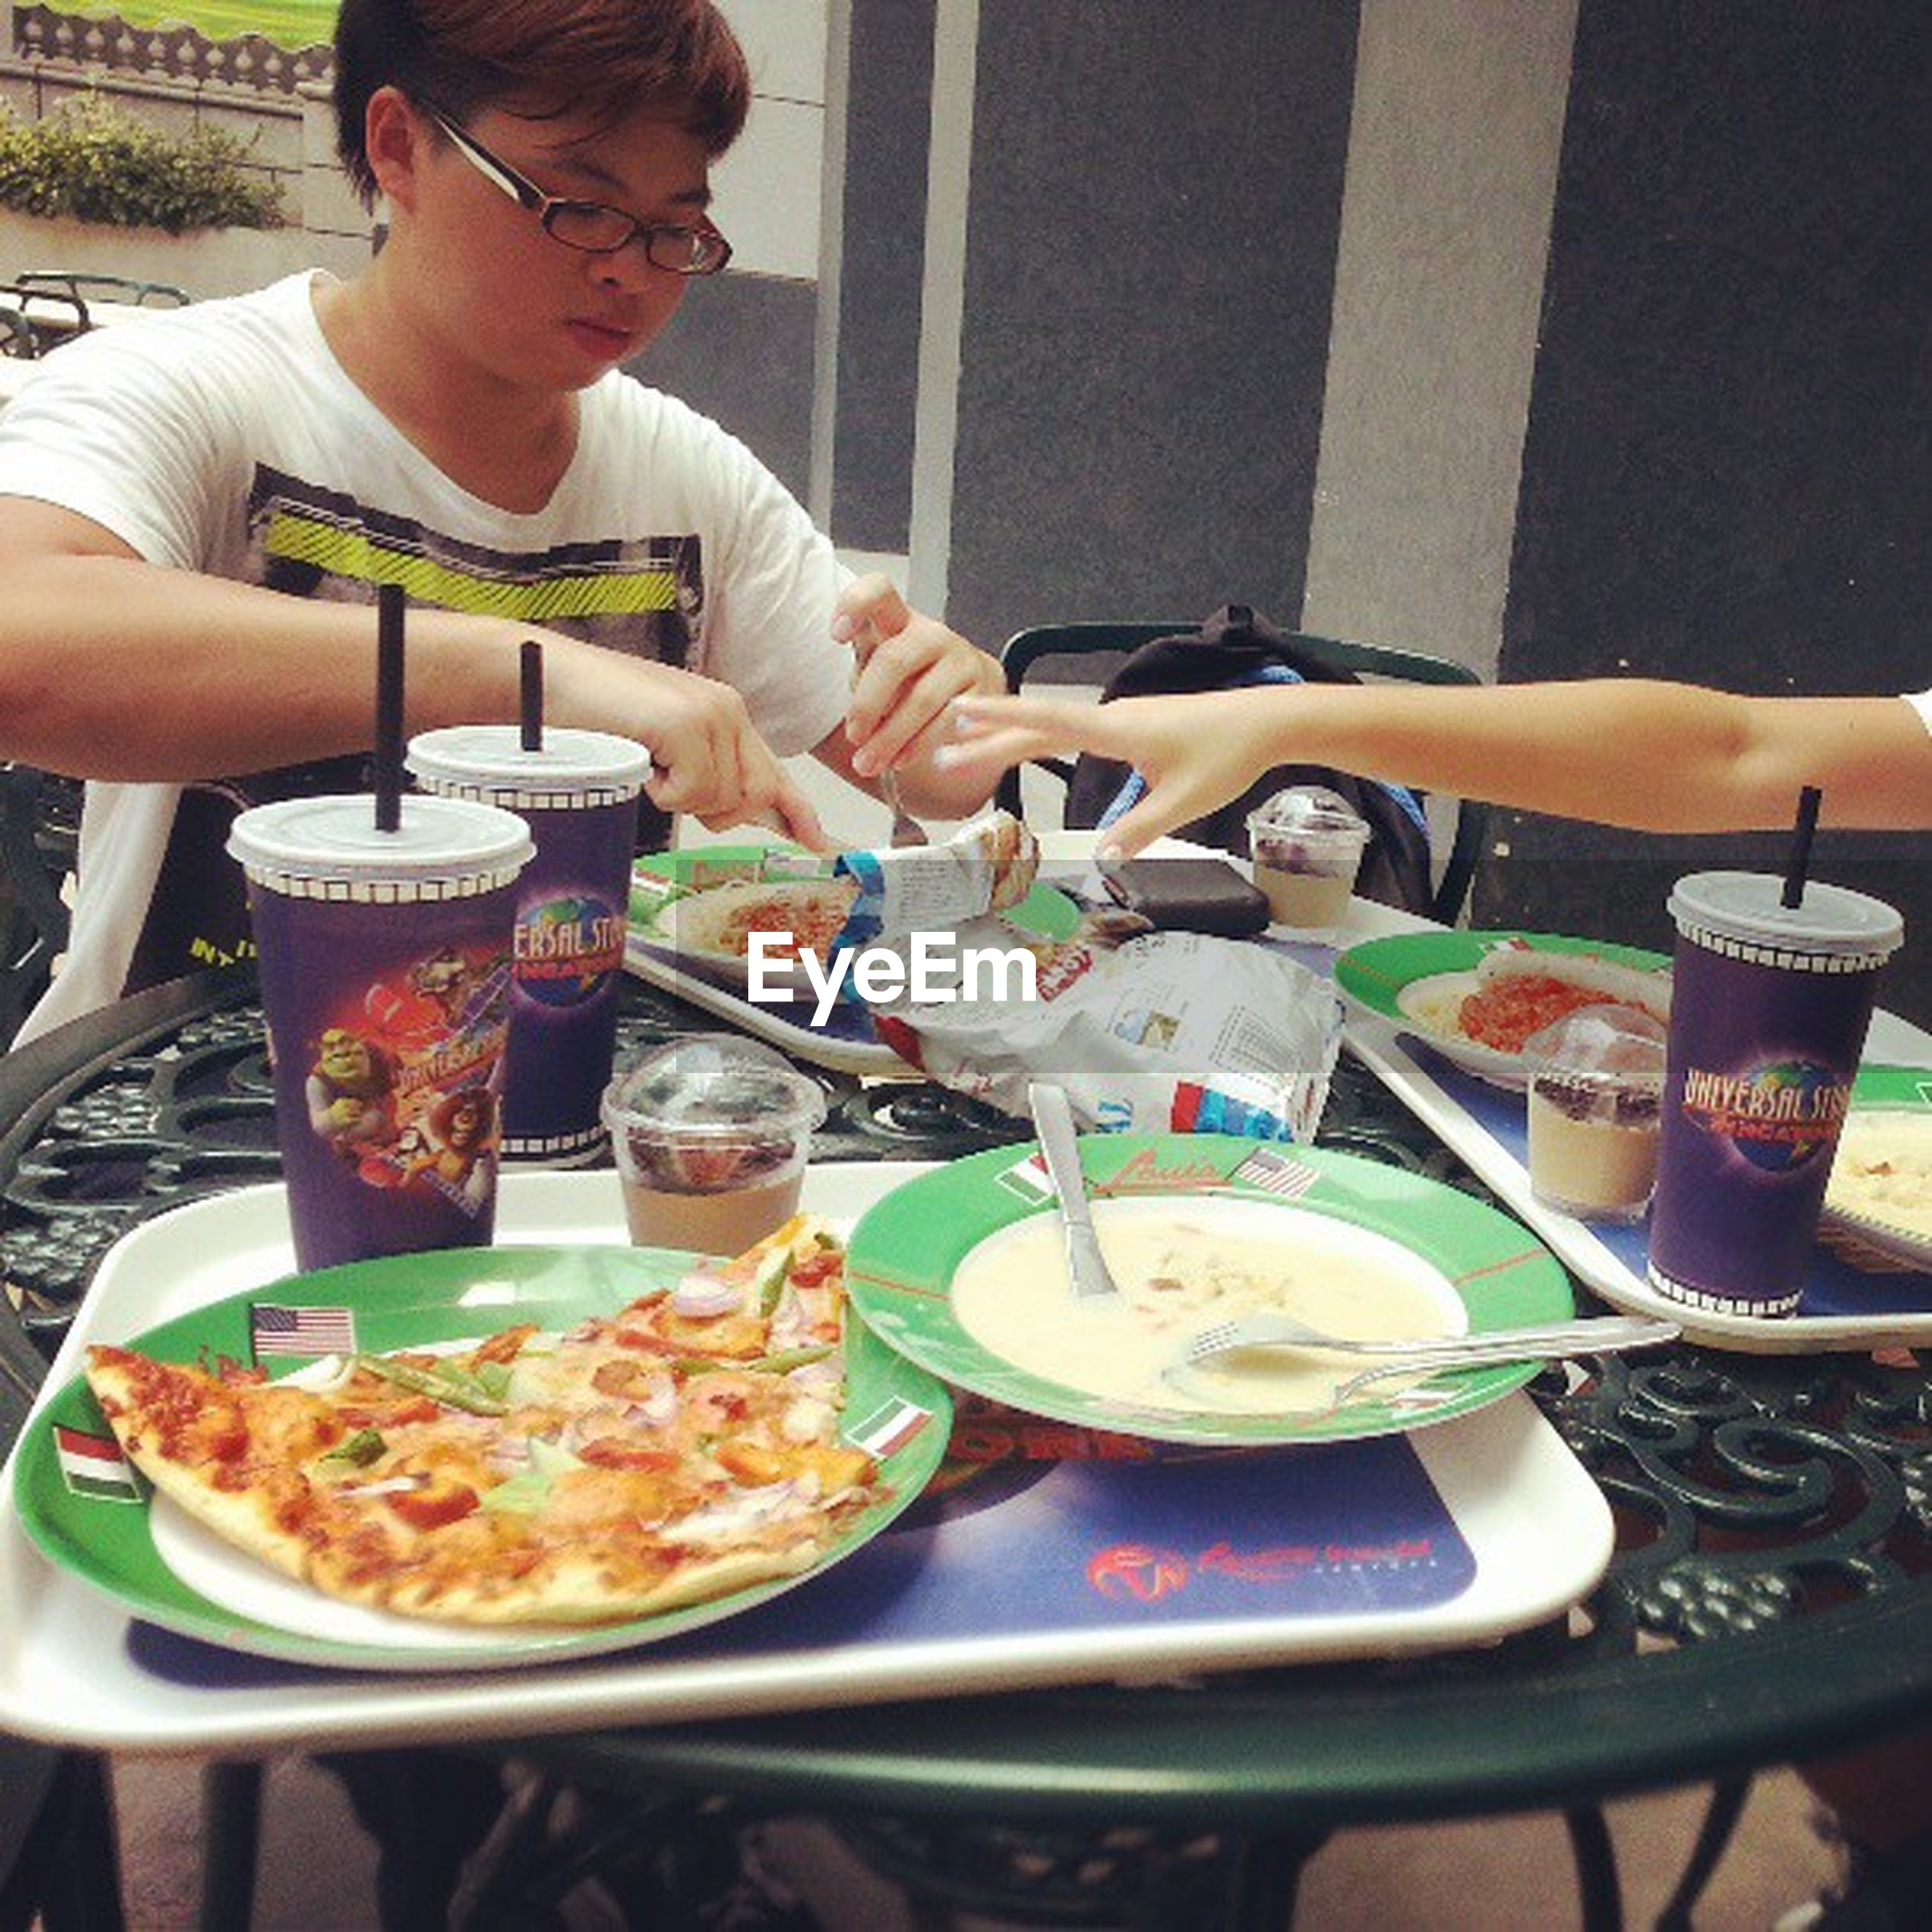 food and drink, food, freshness, plate, person, ready-to-eat, indoors, holding, healthy eating, lifestyles, table, meal, leisure activity, eating, serving size, drink, men, midsection